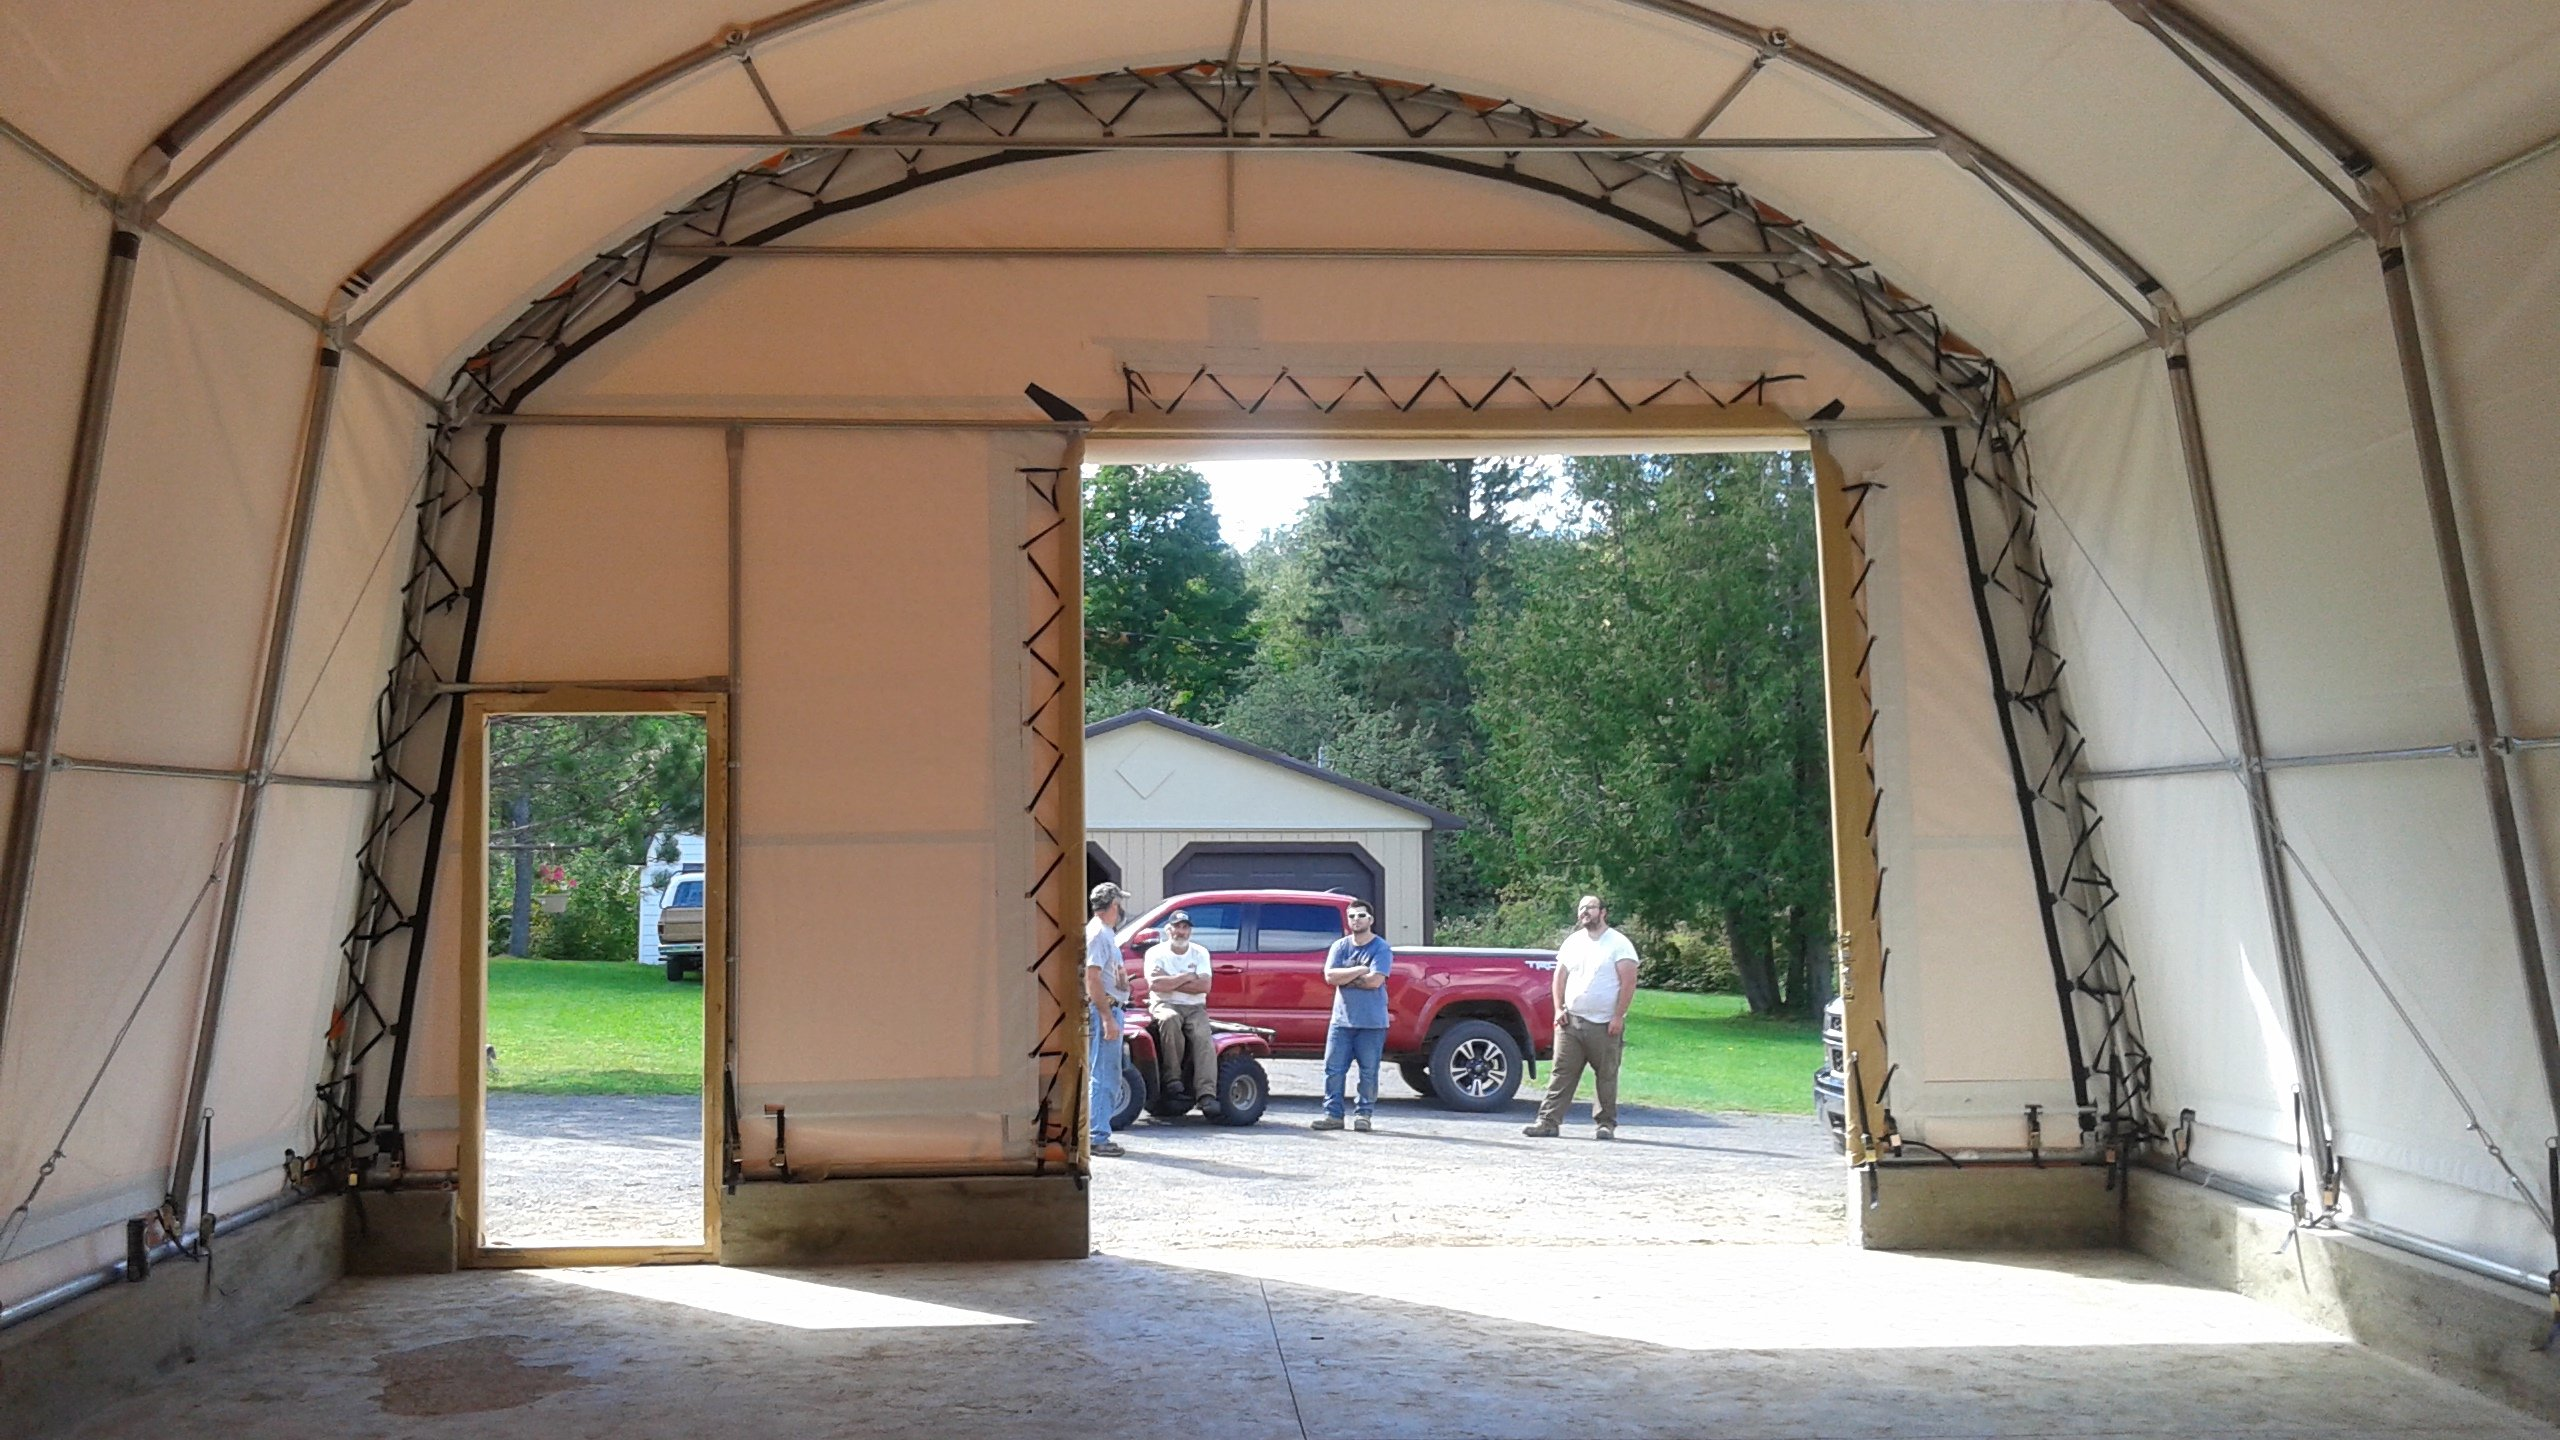 HEAVY TRUCK GARAGES cover-tech inc. call toll free 1-888-325-5757